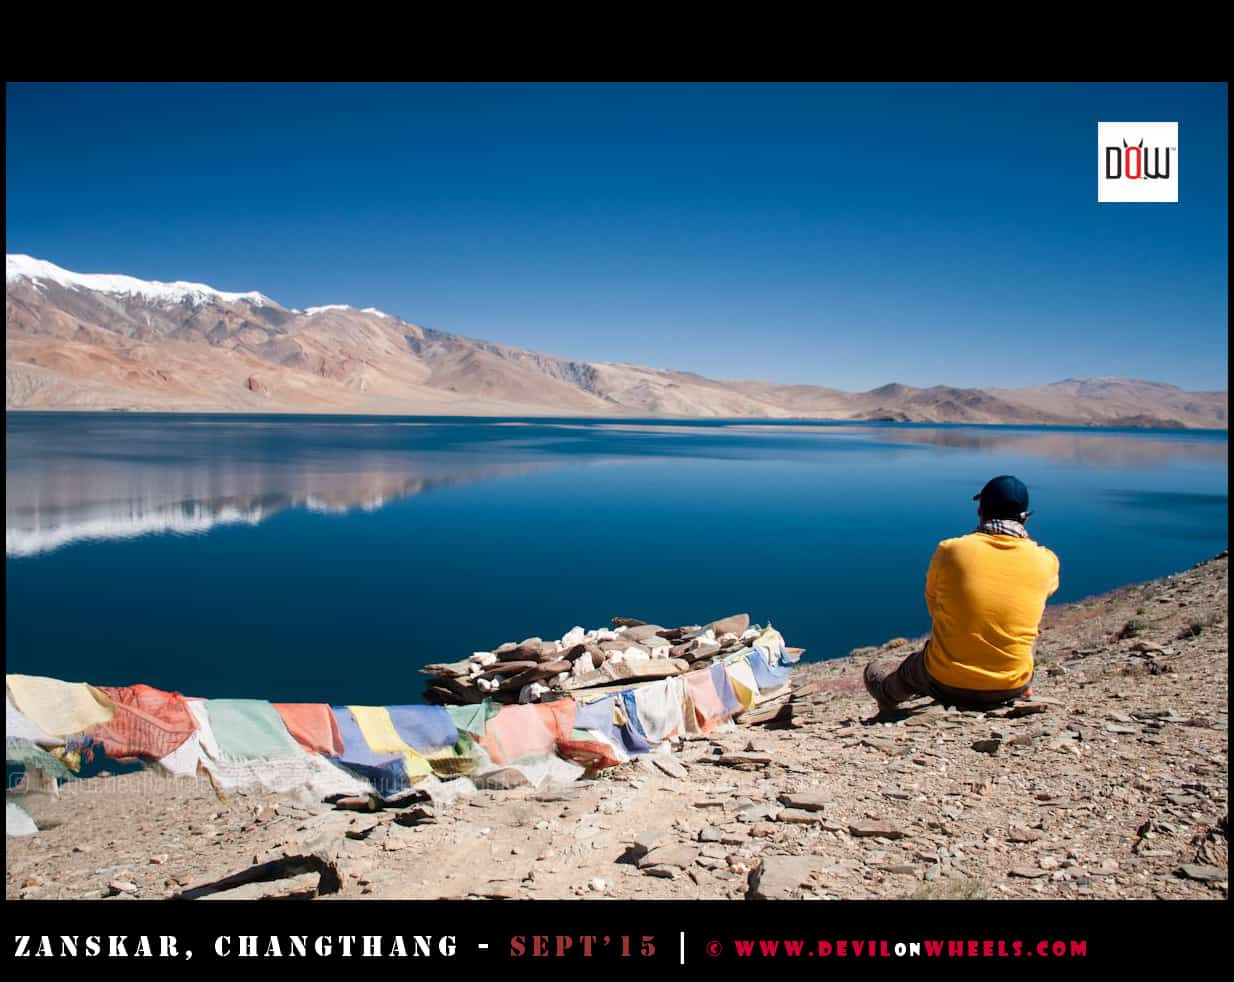 Still, wondering about a Solo Trip to Ladakh??